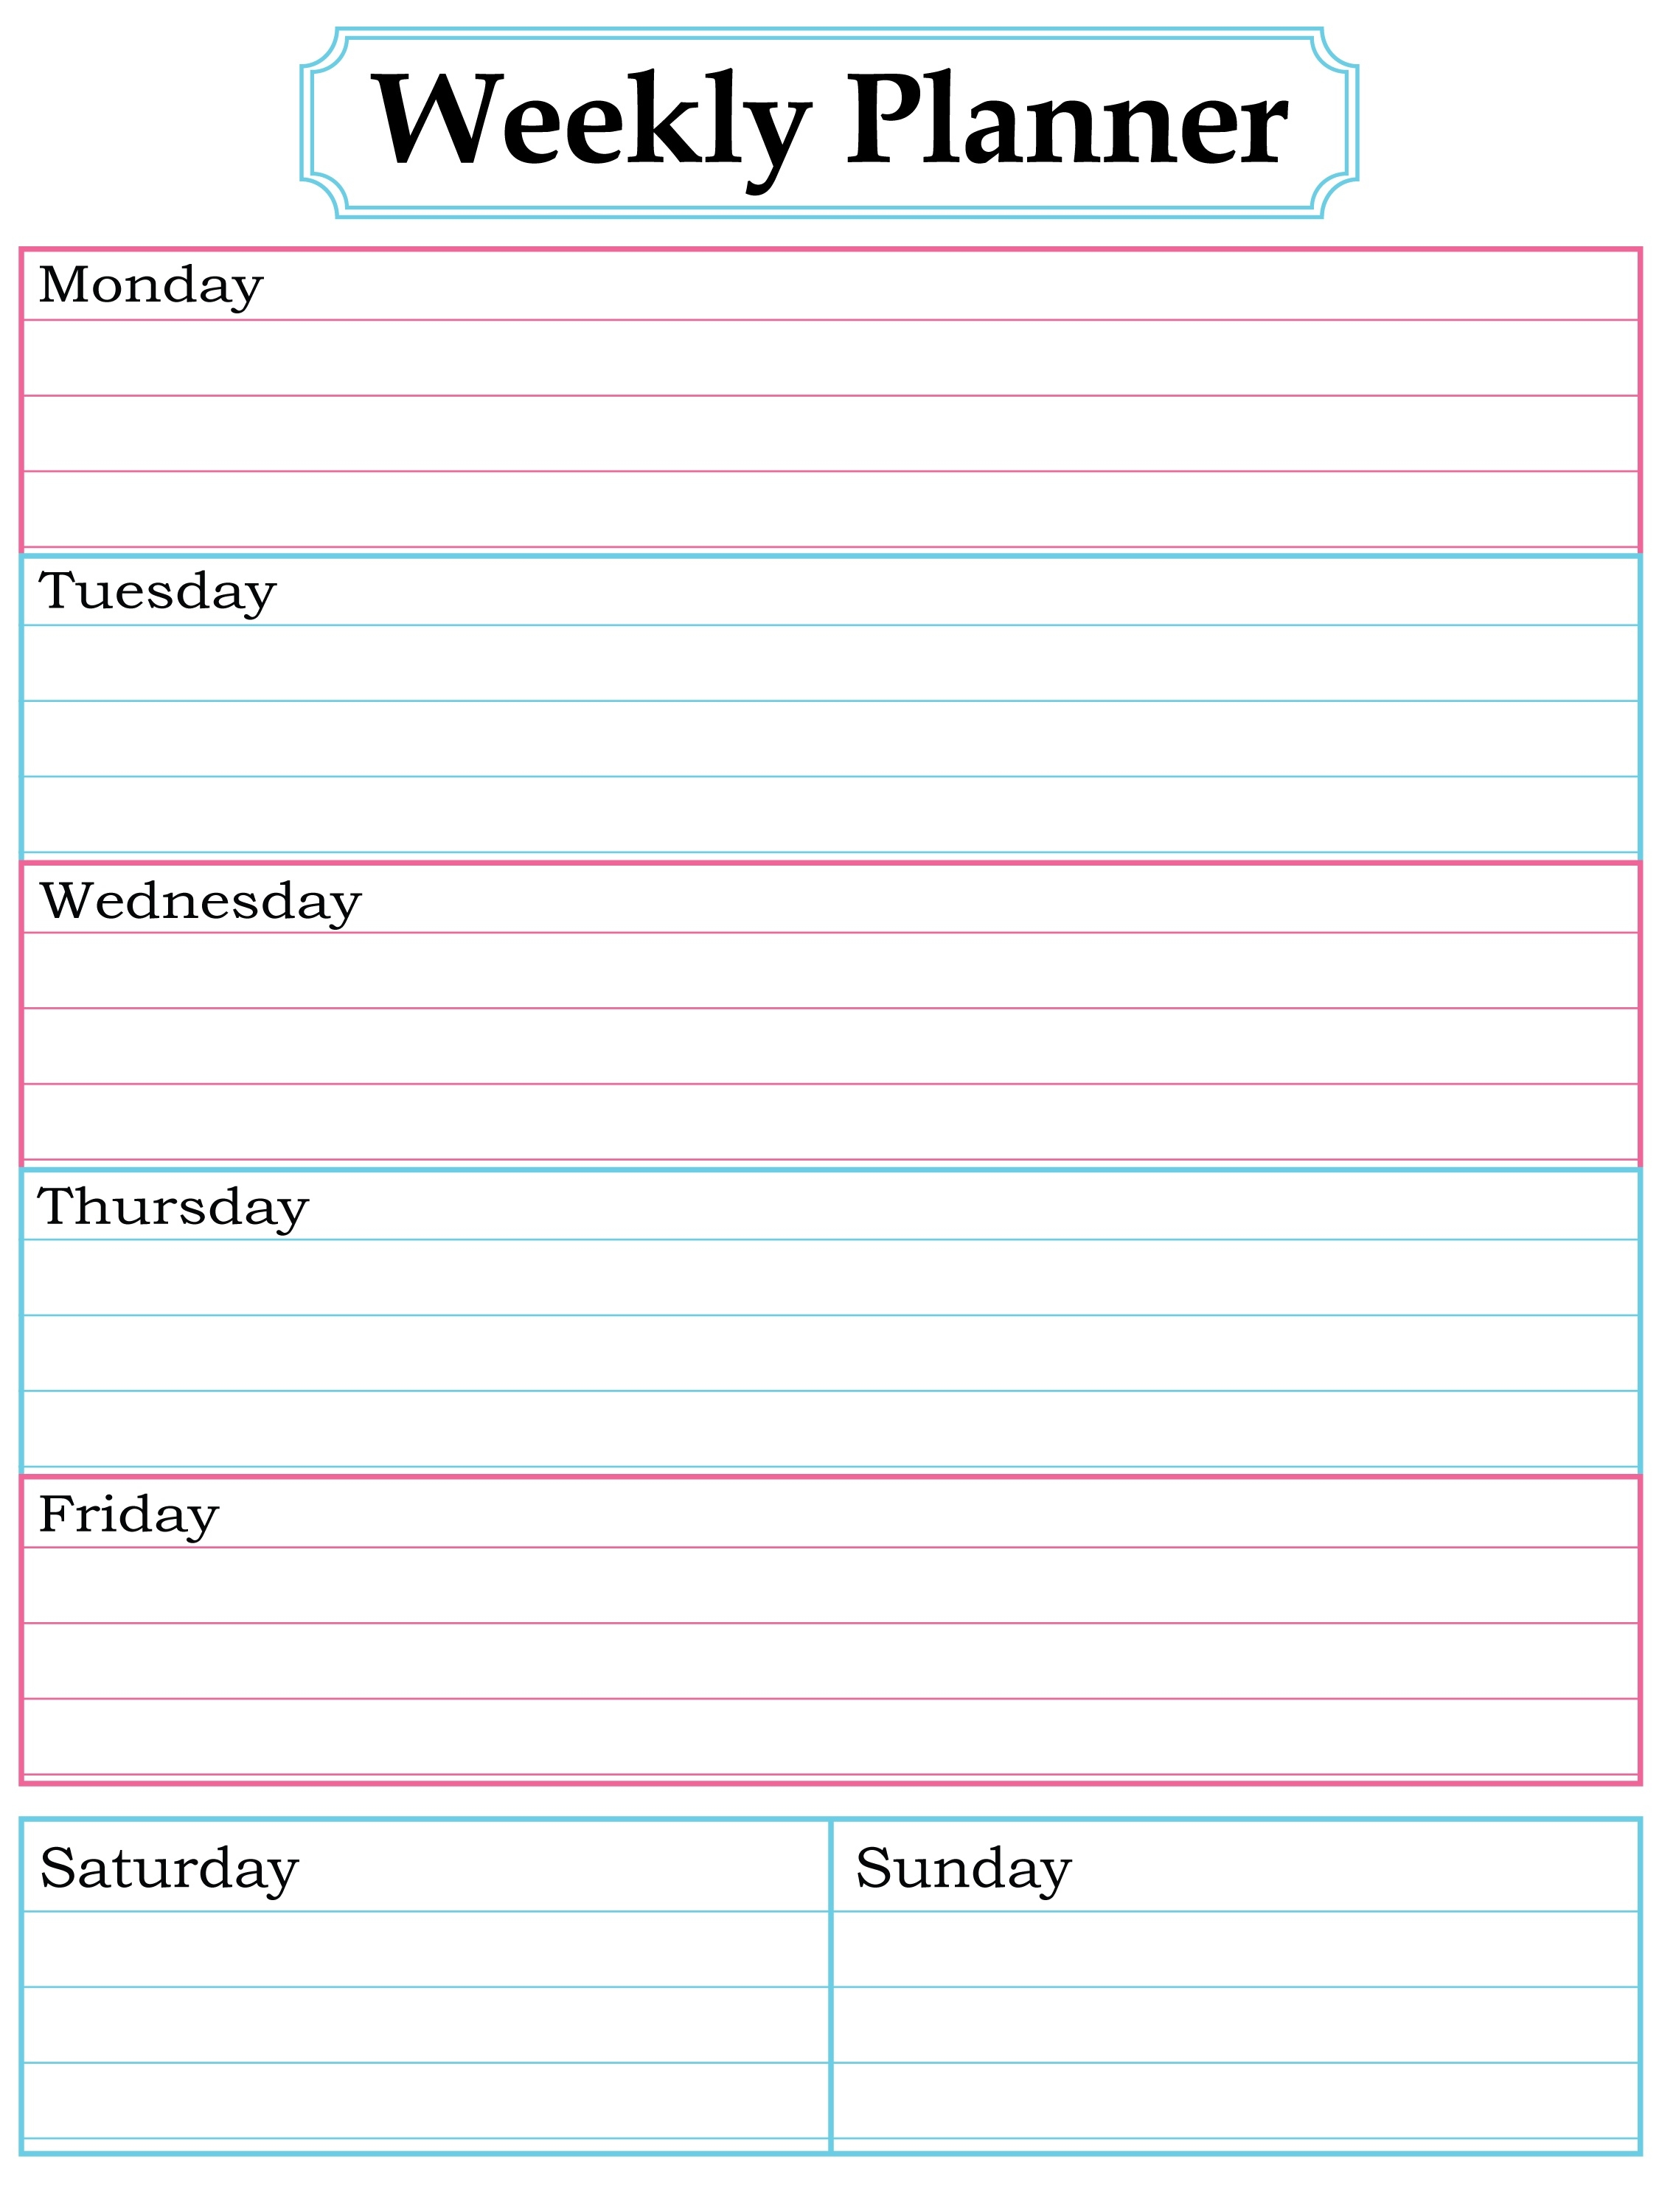 Weekly Monthly Planner Printable - Yeniscale.co  Free Printable Day Planner Templates